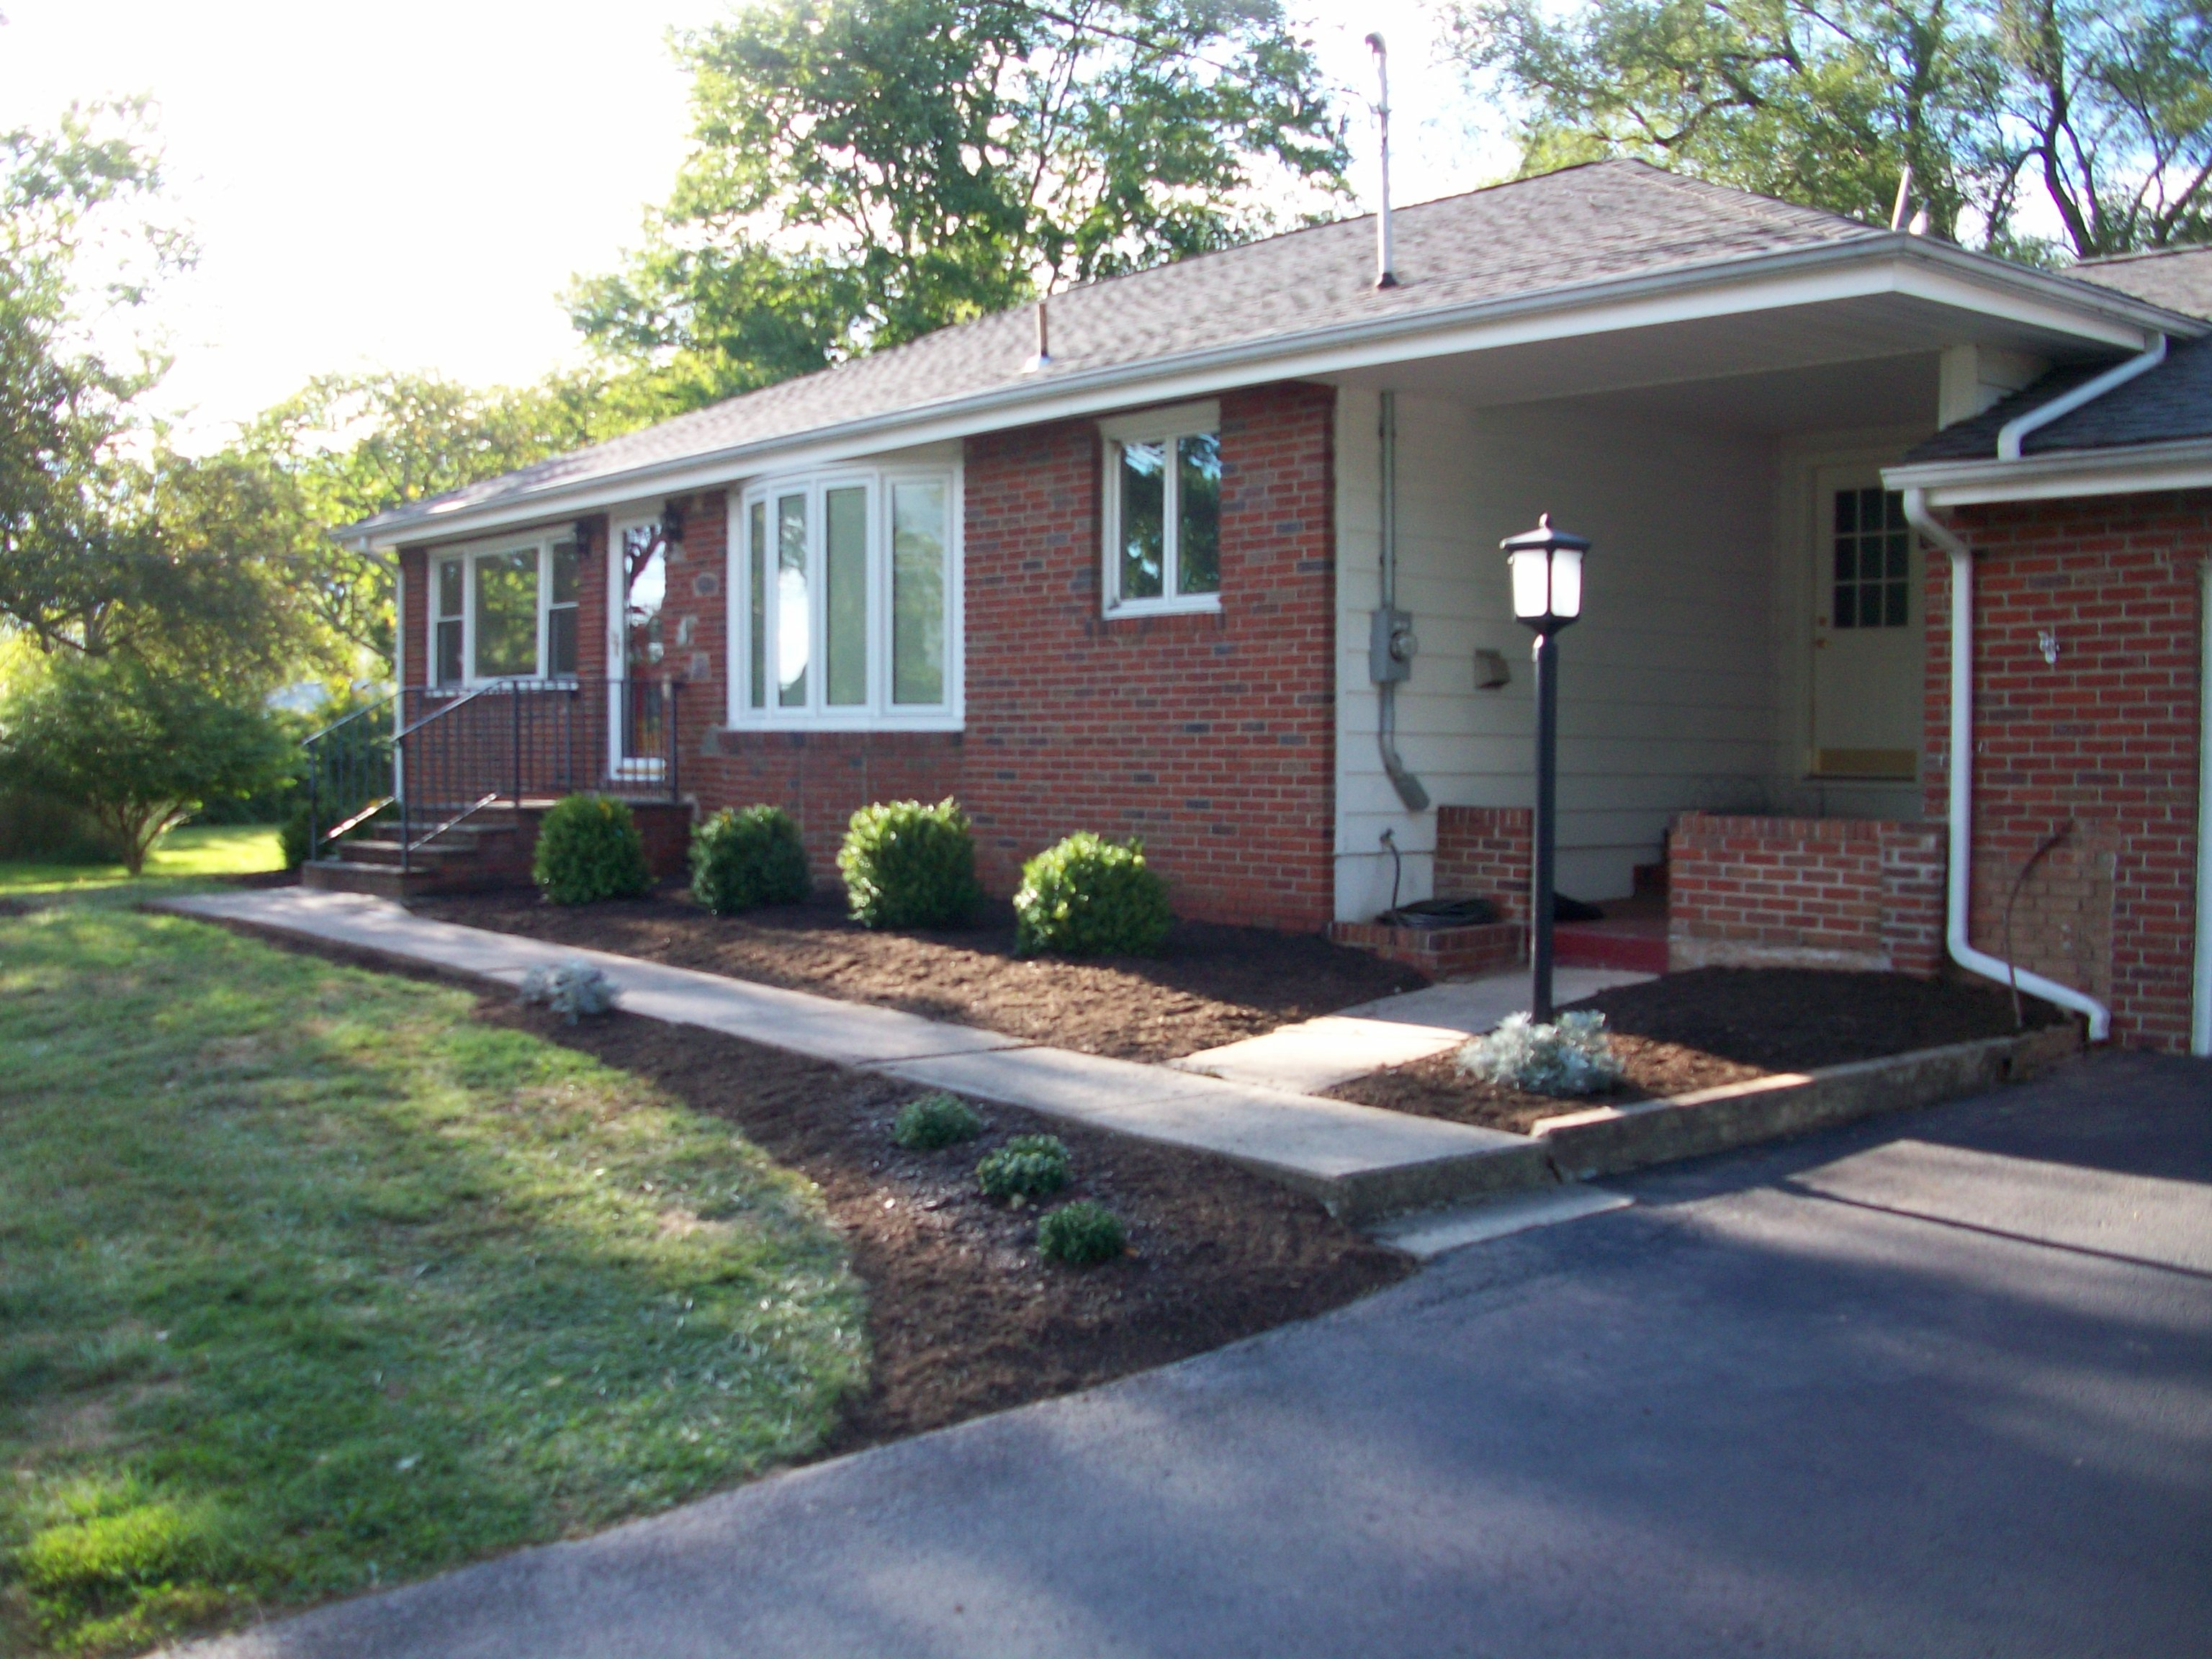 A Basic Landscaping Install 4 Seasons Lawn Care